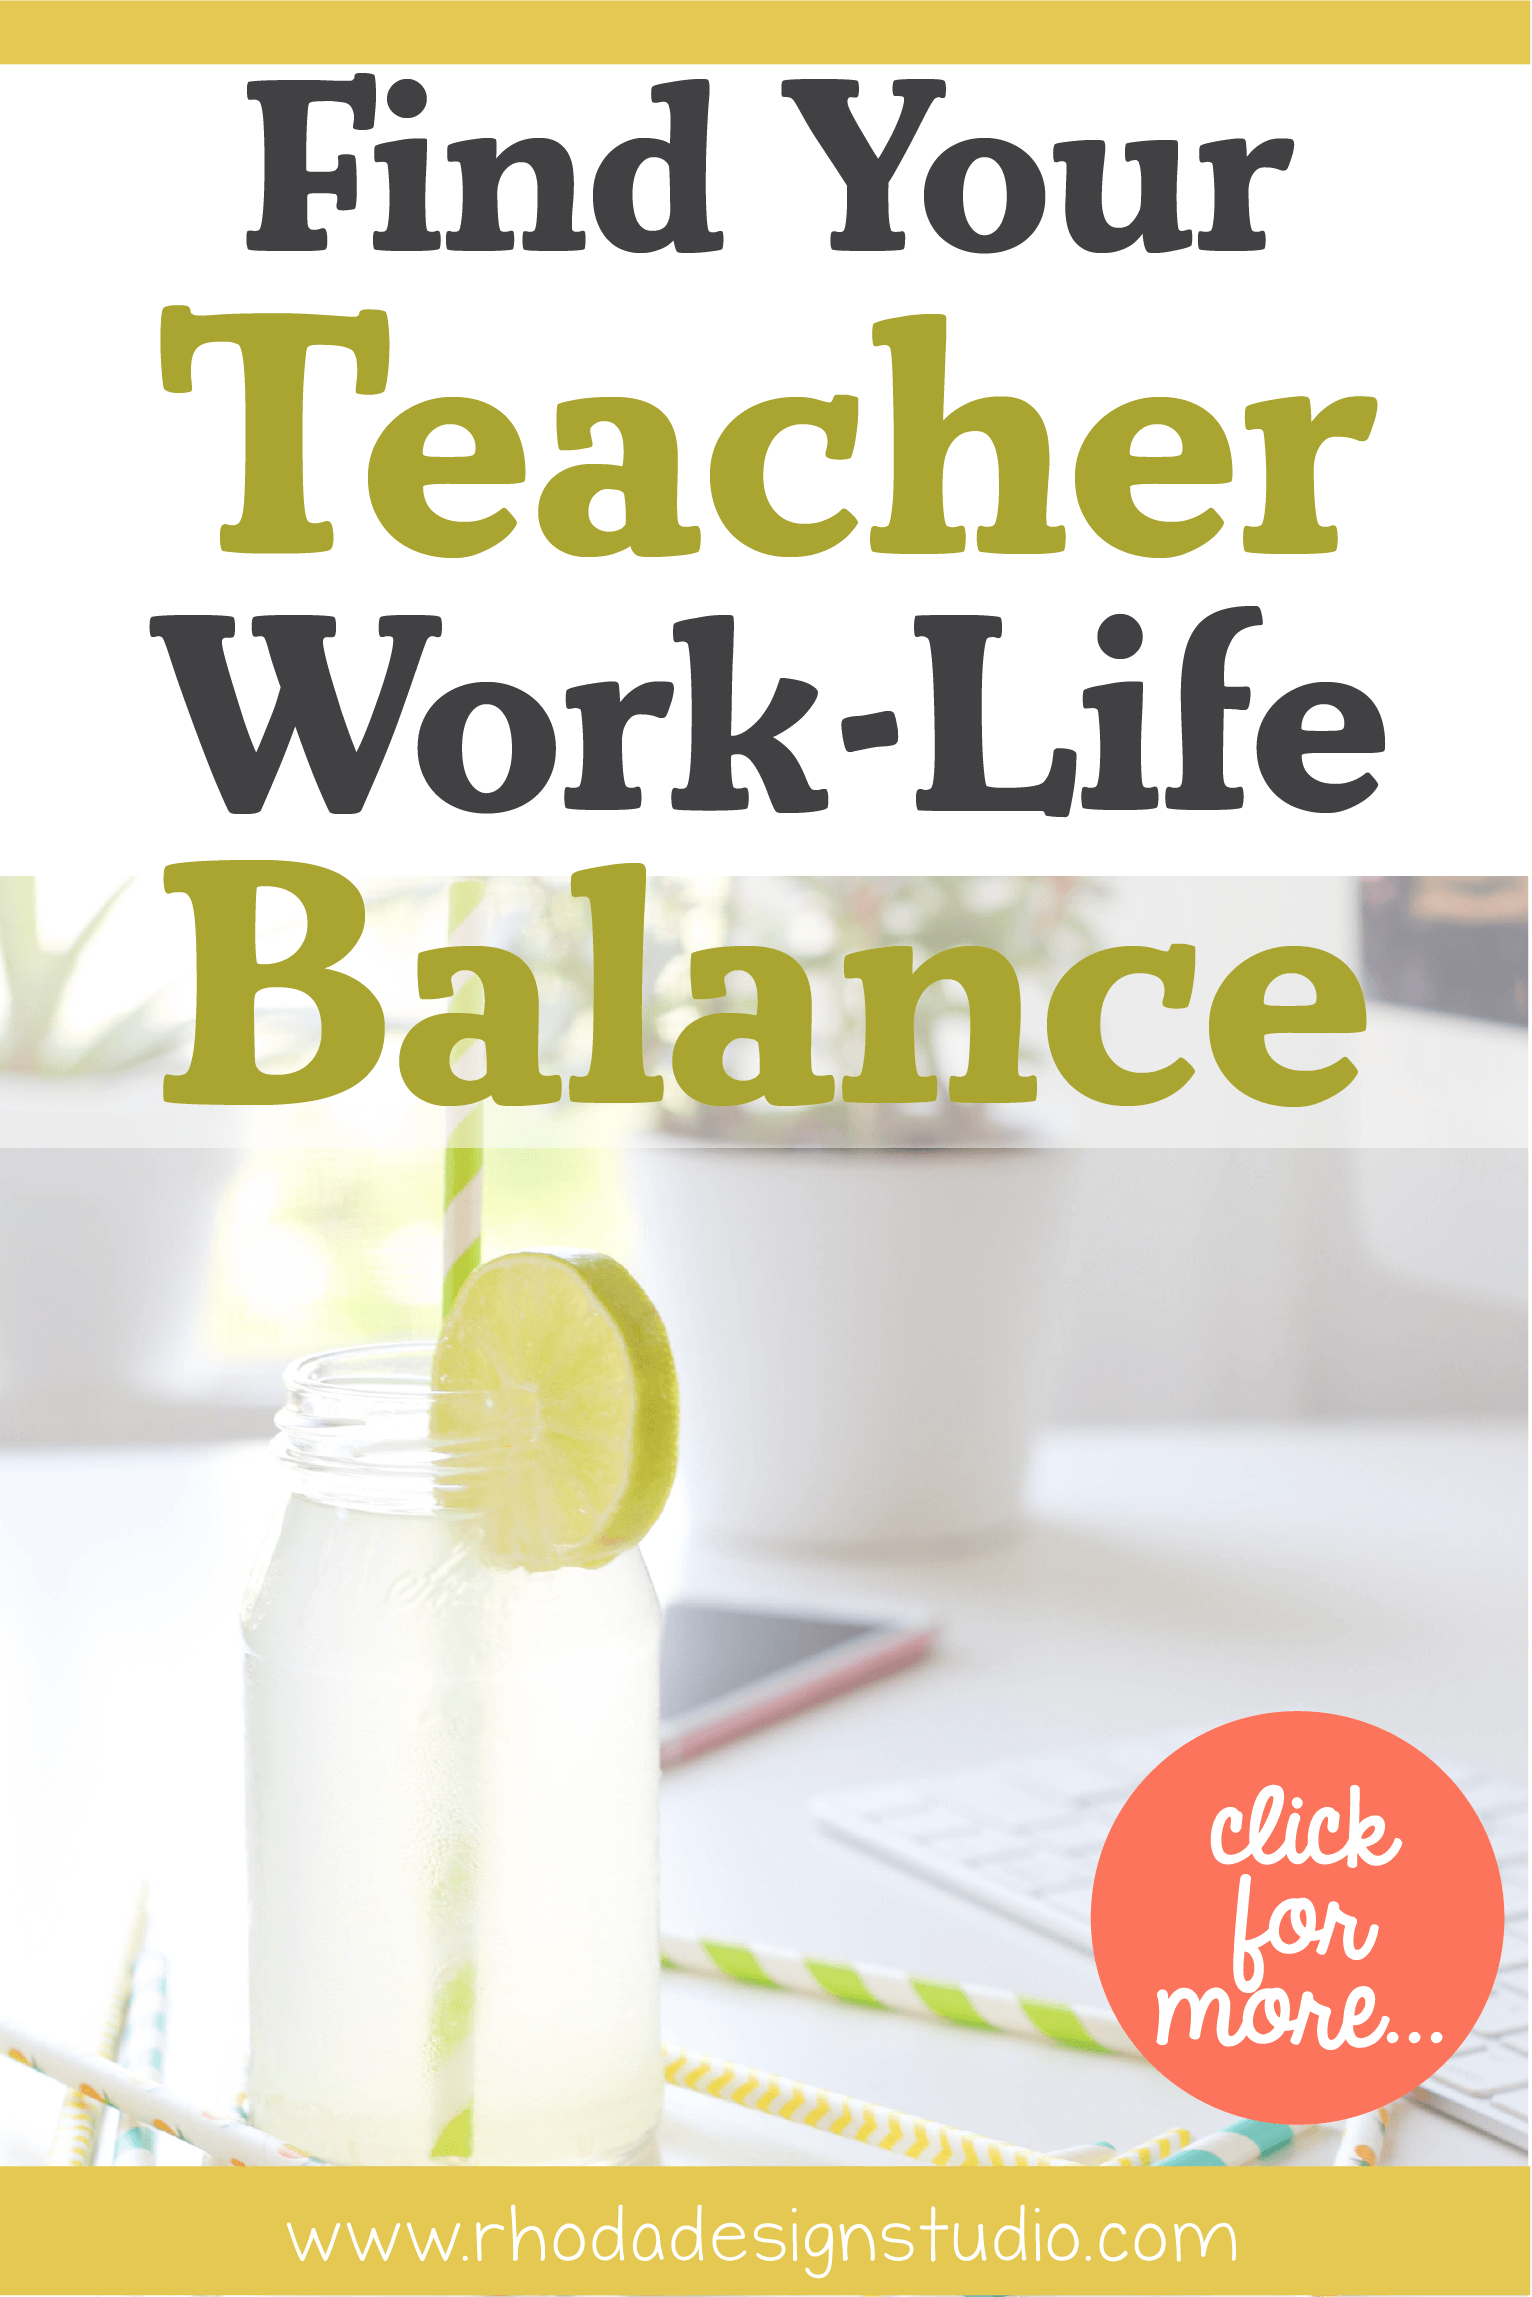 Find your teacher work-life balance by learning tips on paying bills, grocery shopping, and finding more time. Balancing teaching and personal life can be hard. Work-life balance tips for teachers can help make the process easier.